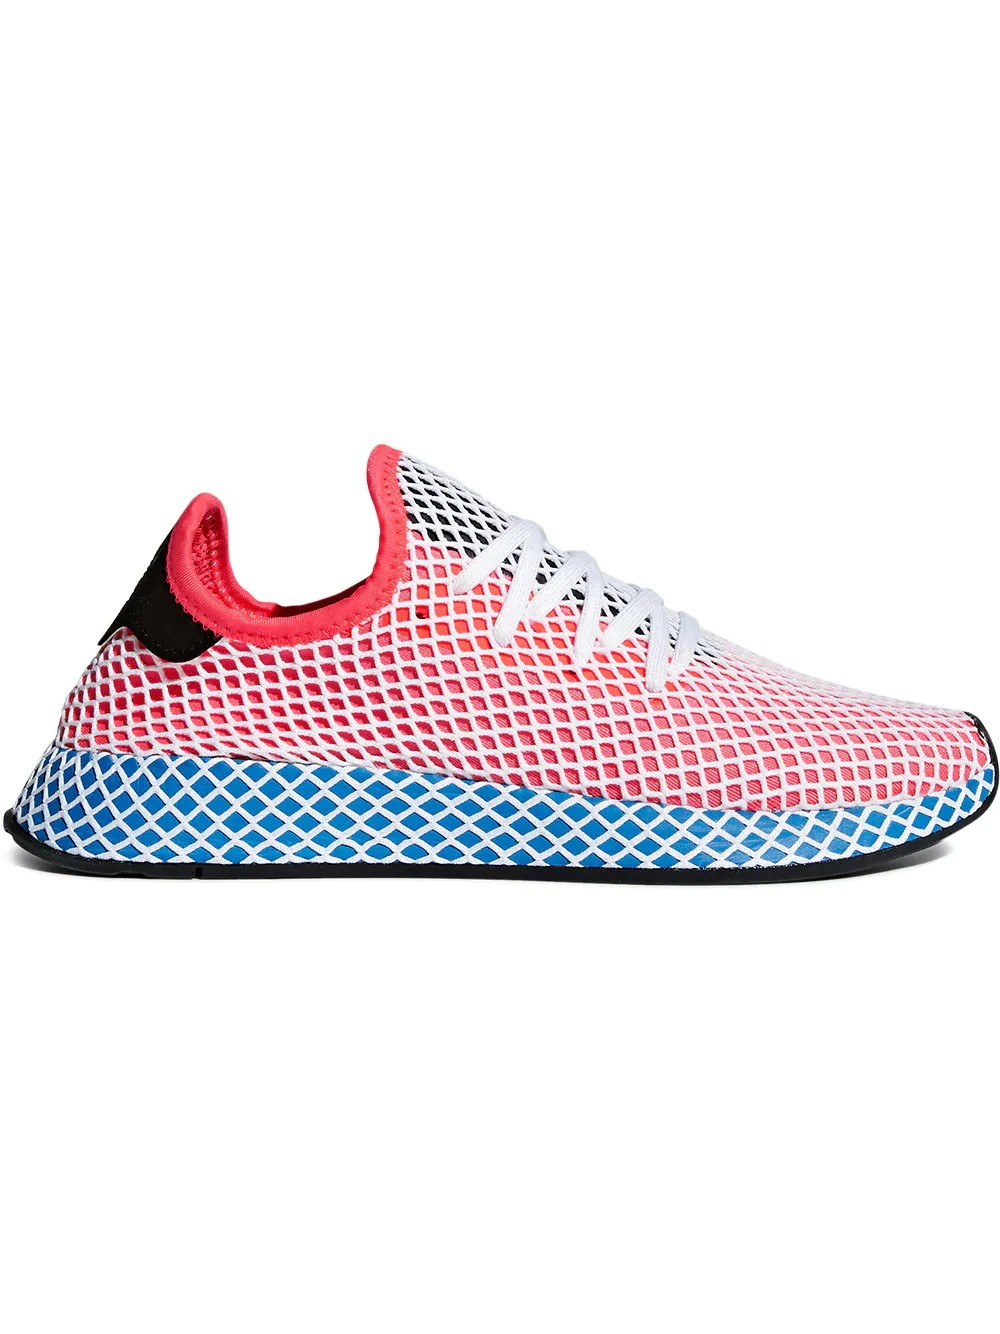 Adidas Originals Deerupt Runner | Rojas | Sneakers | CQ2624